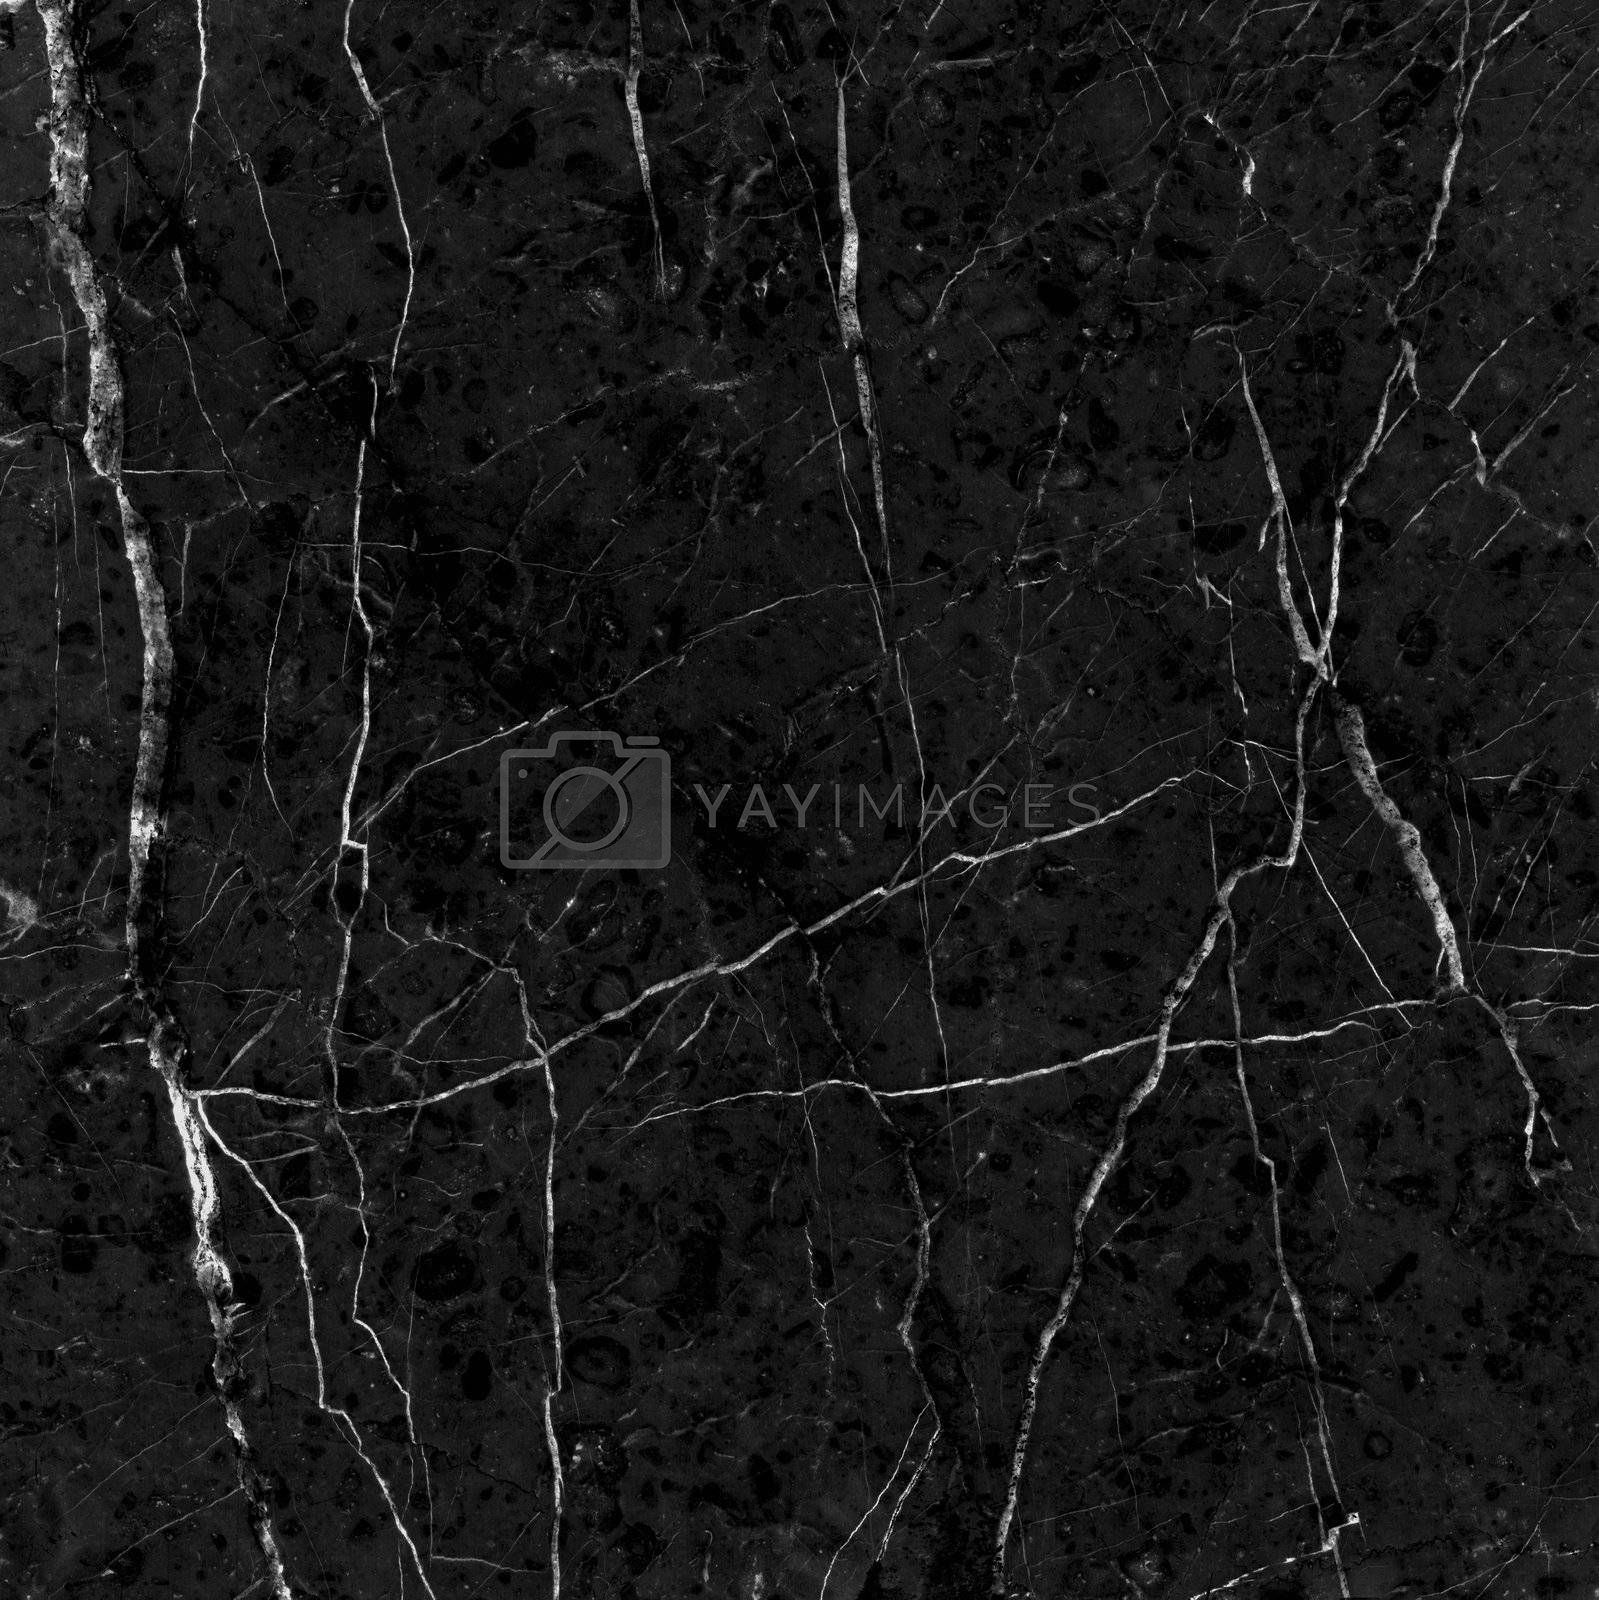 Black Marble Texture High Res Royalty Free Stock Image Stock Photos Royalty Free Images Vectors Footage Yayimages